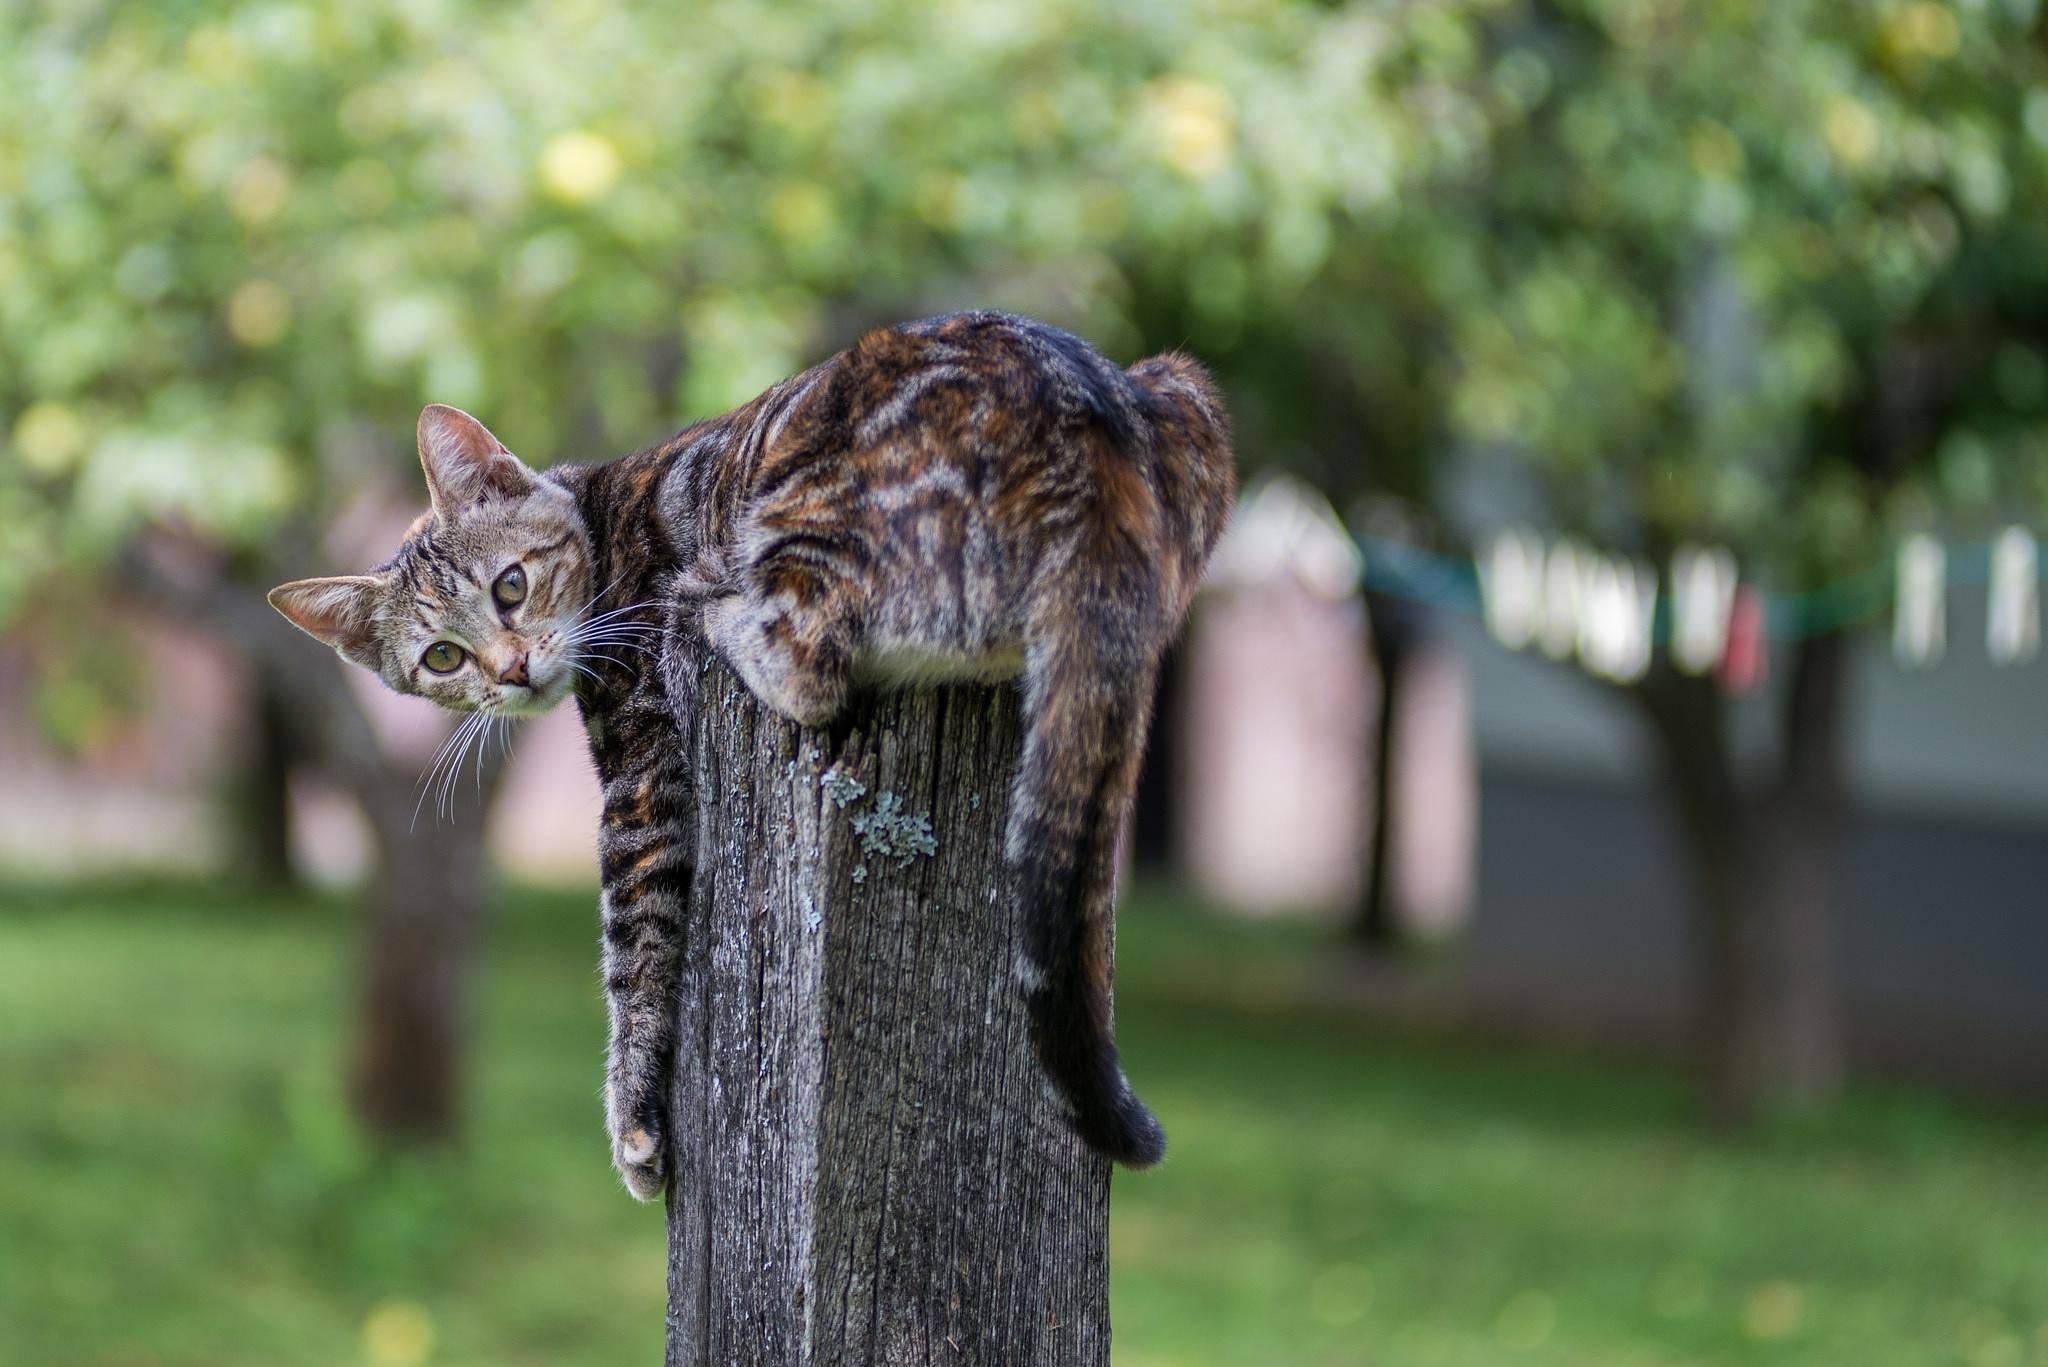 kitty by Vlado Ferencic